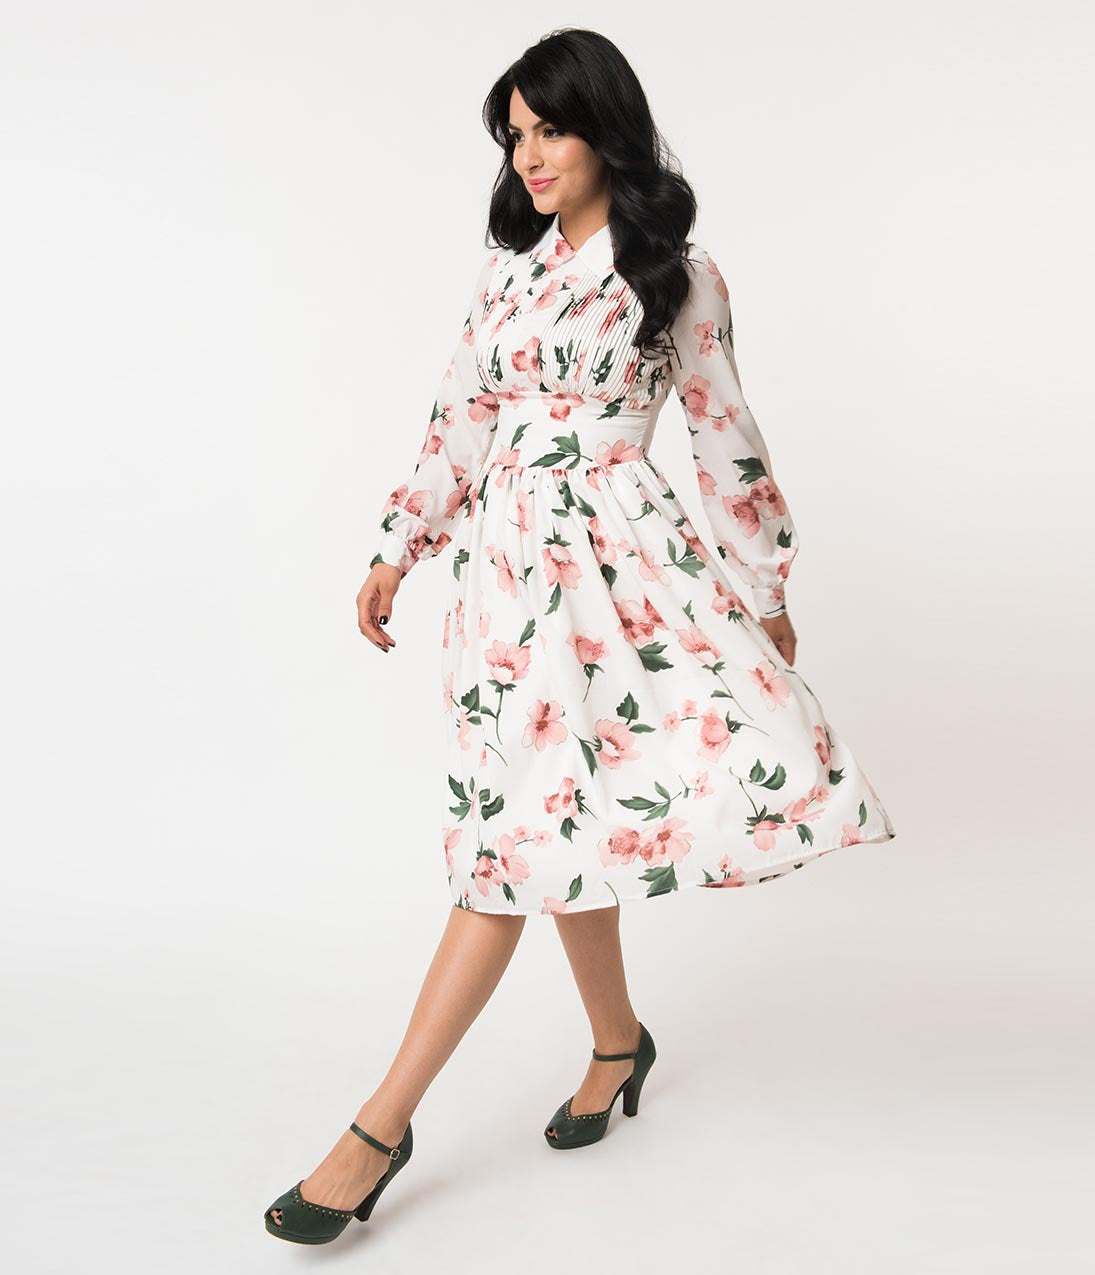 1940s Dresses | 40s Dress, Swing Dress Unique Vintage 1940S Style White  Pink Floral Crepe Deirdre Shirt Dress $118.00 AT vintagedancer.com